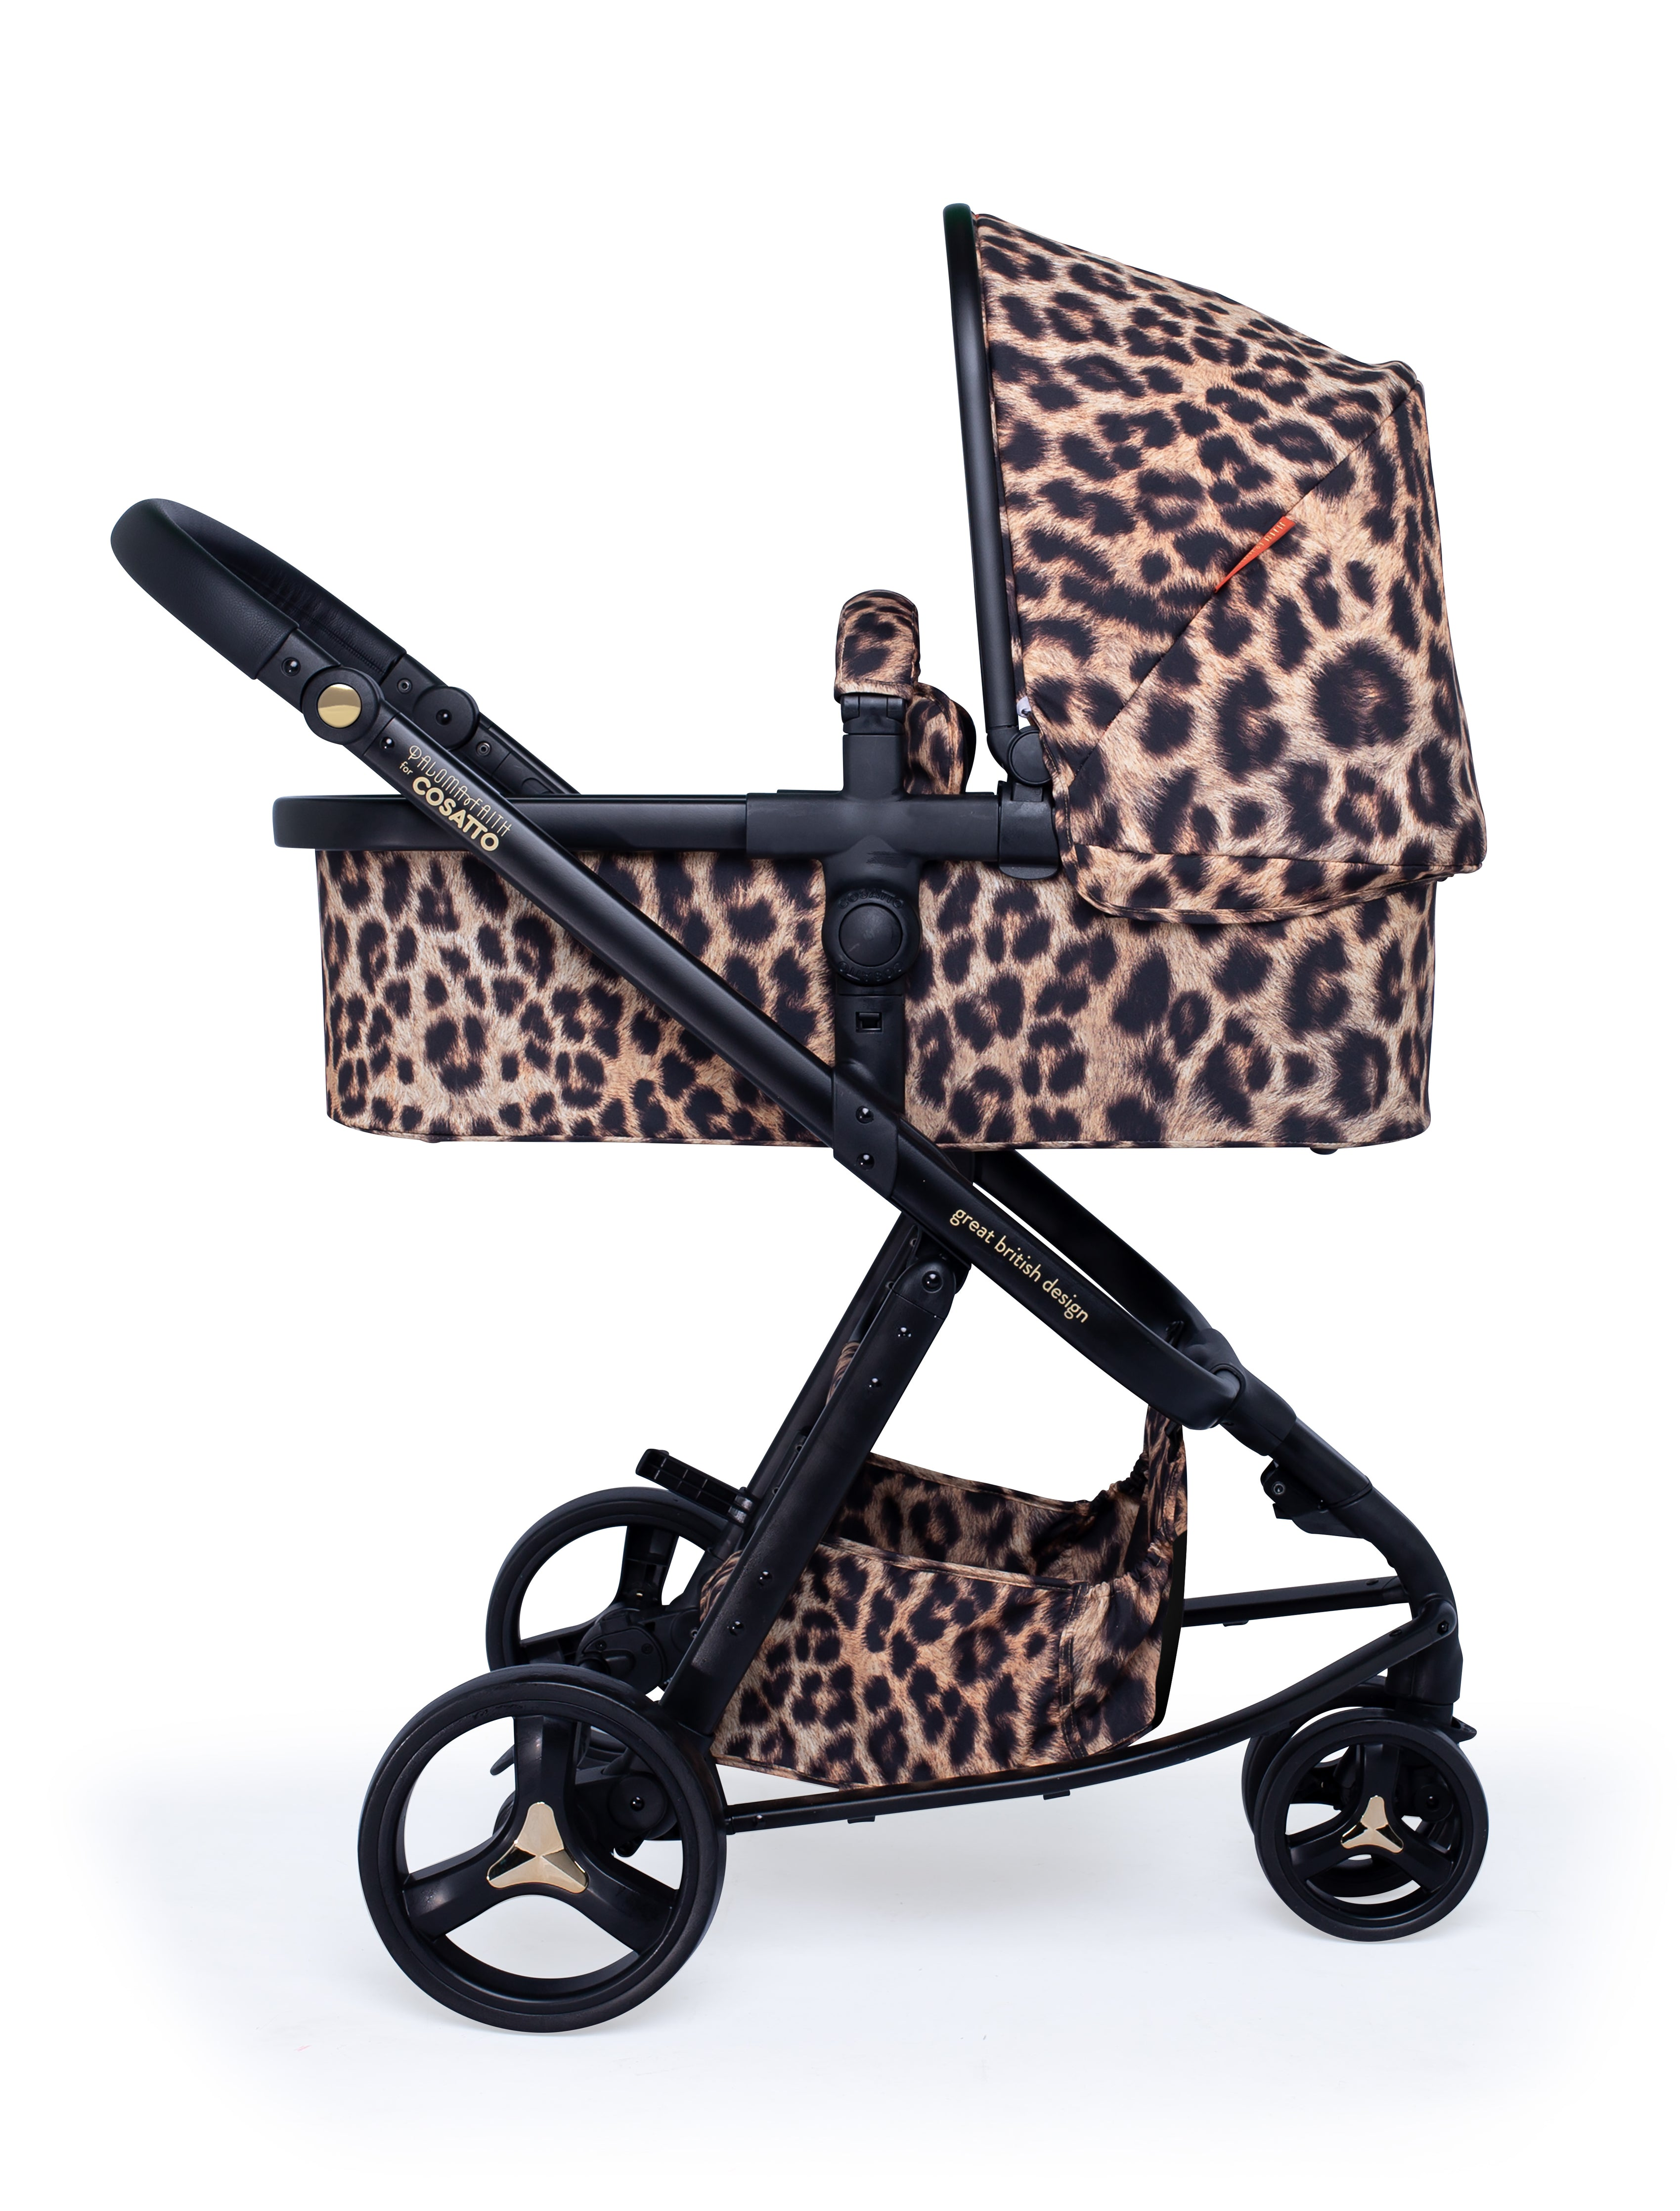 Giggle 3 Pram and Pushchair Special Edition Hear us Roar